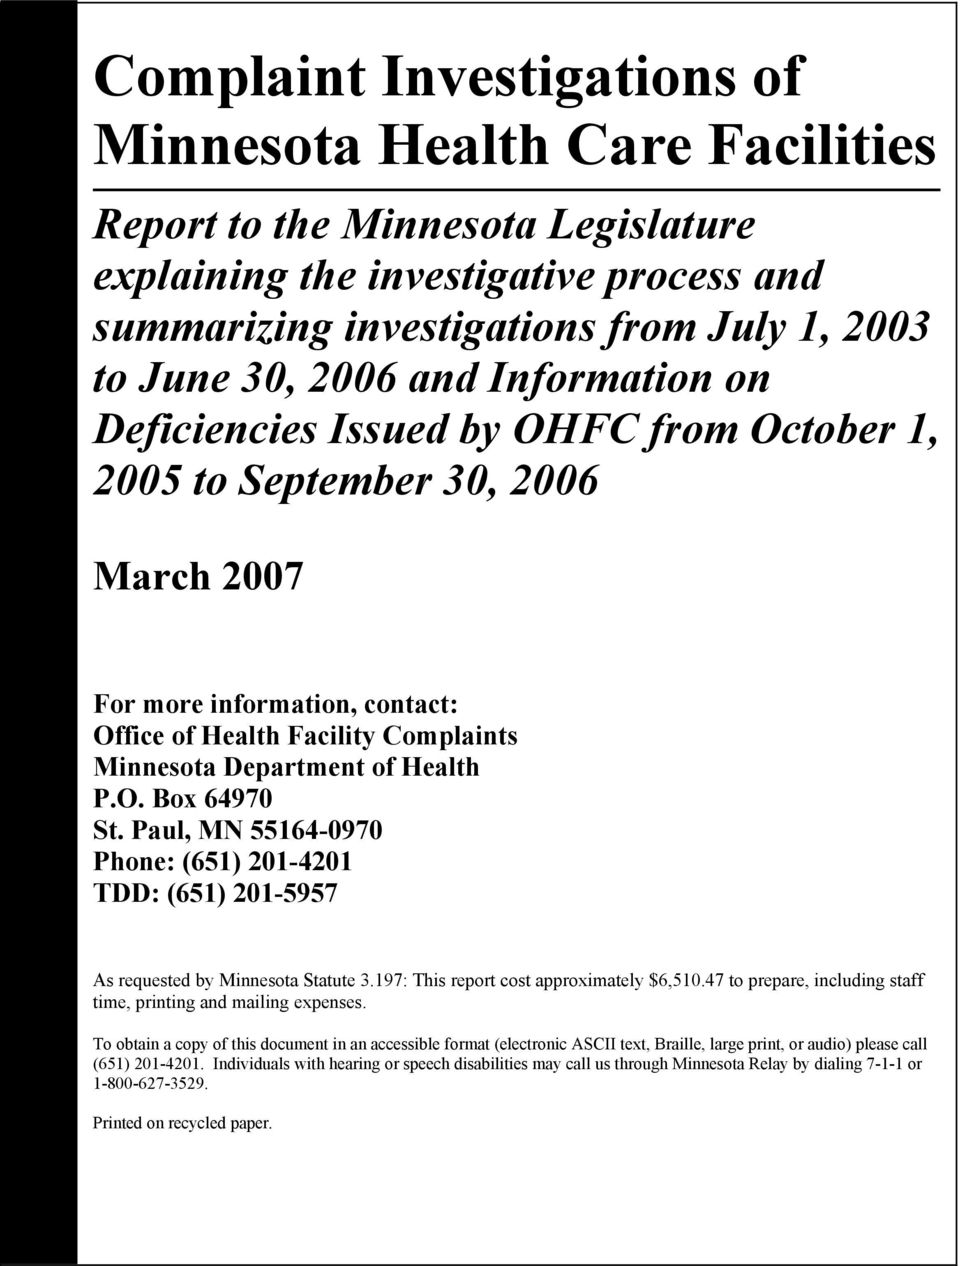 P.O. Box 64970 St. Paul, MN 55164-0970 Phone: (651) 201-4201 TDD: (651) 201-5957 As requested by Minnesota Statute 3.197: This report cost approximately $6,510.